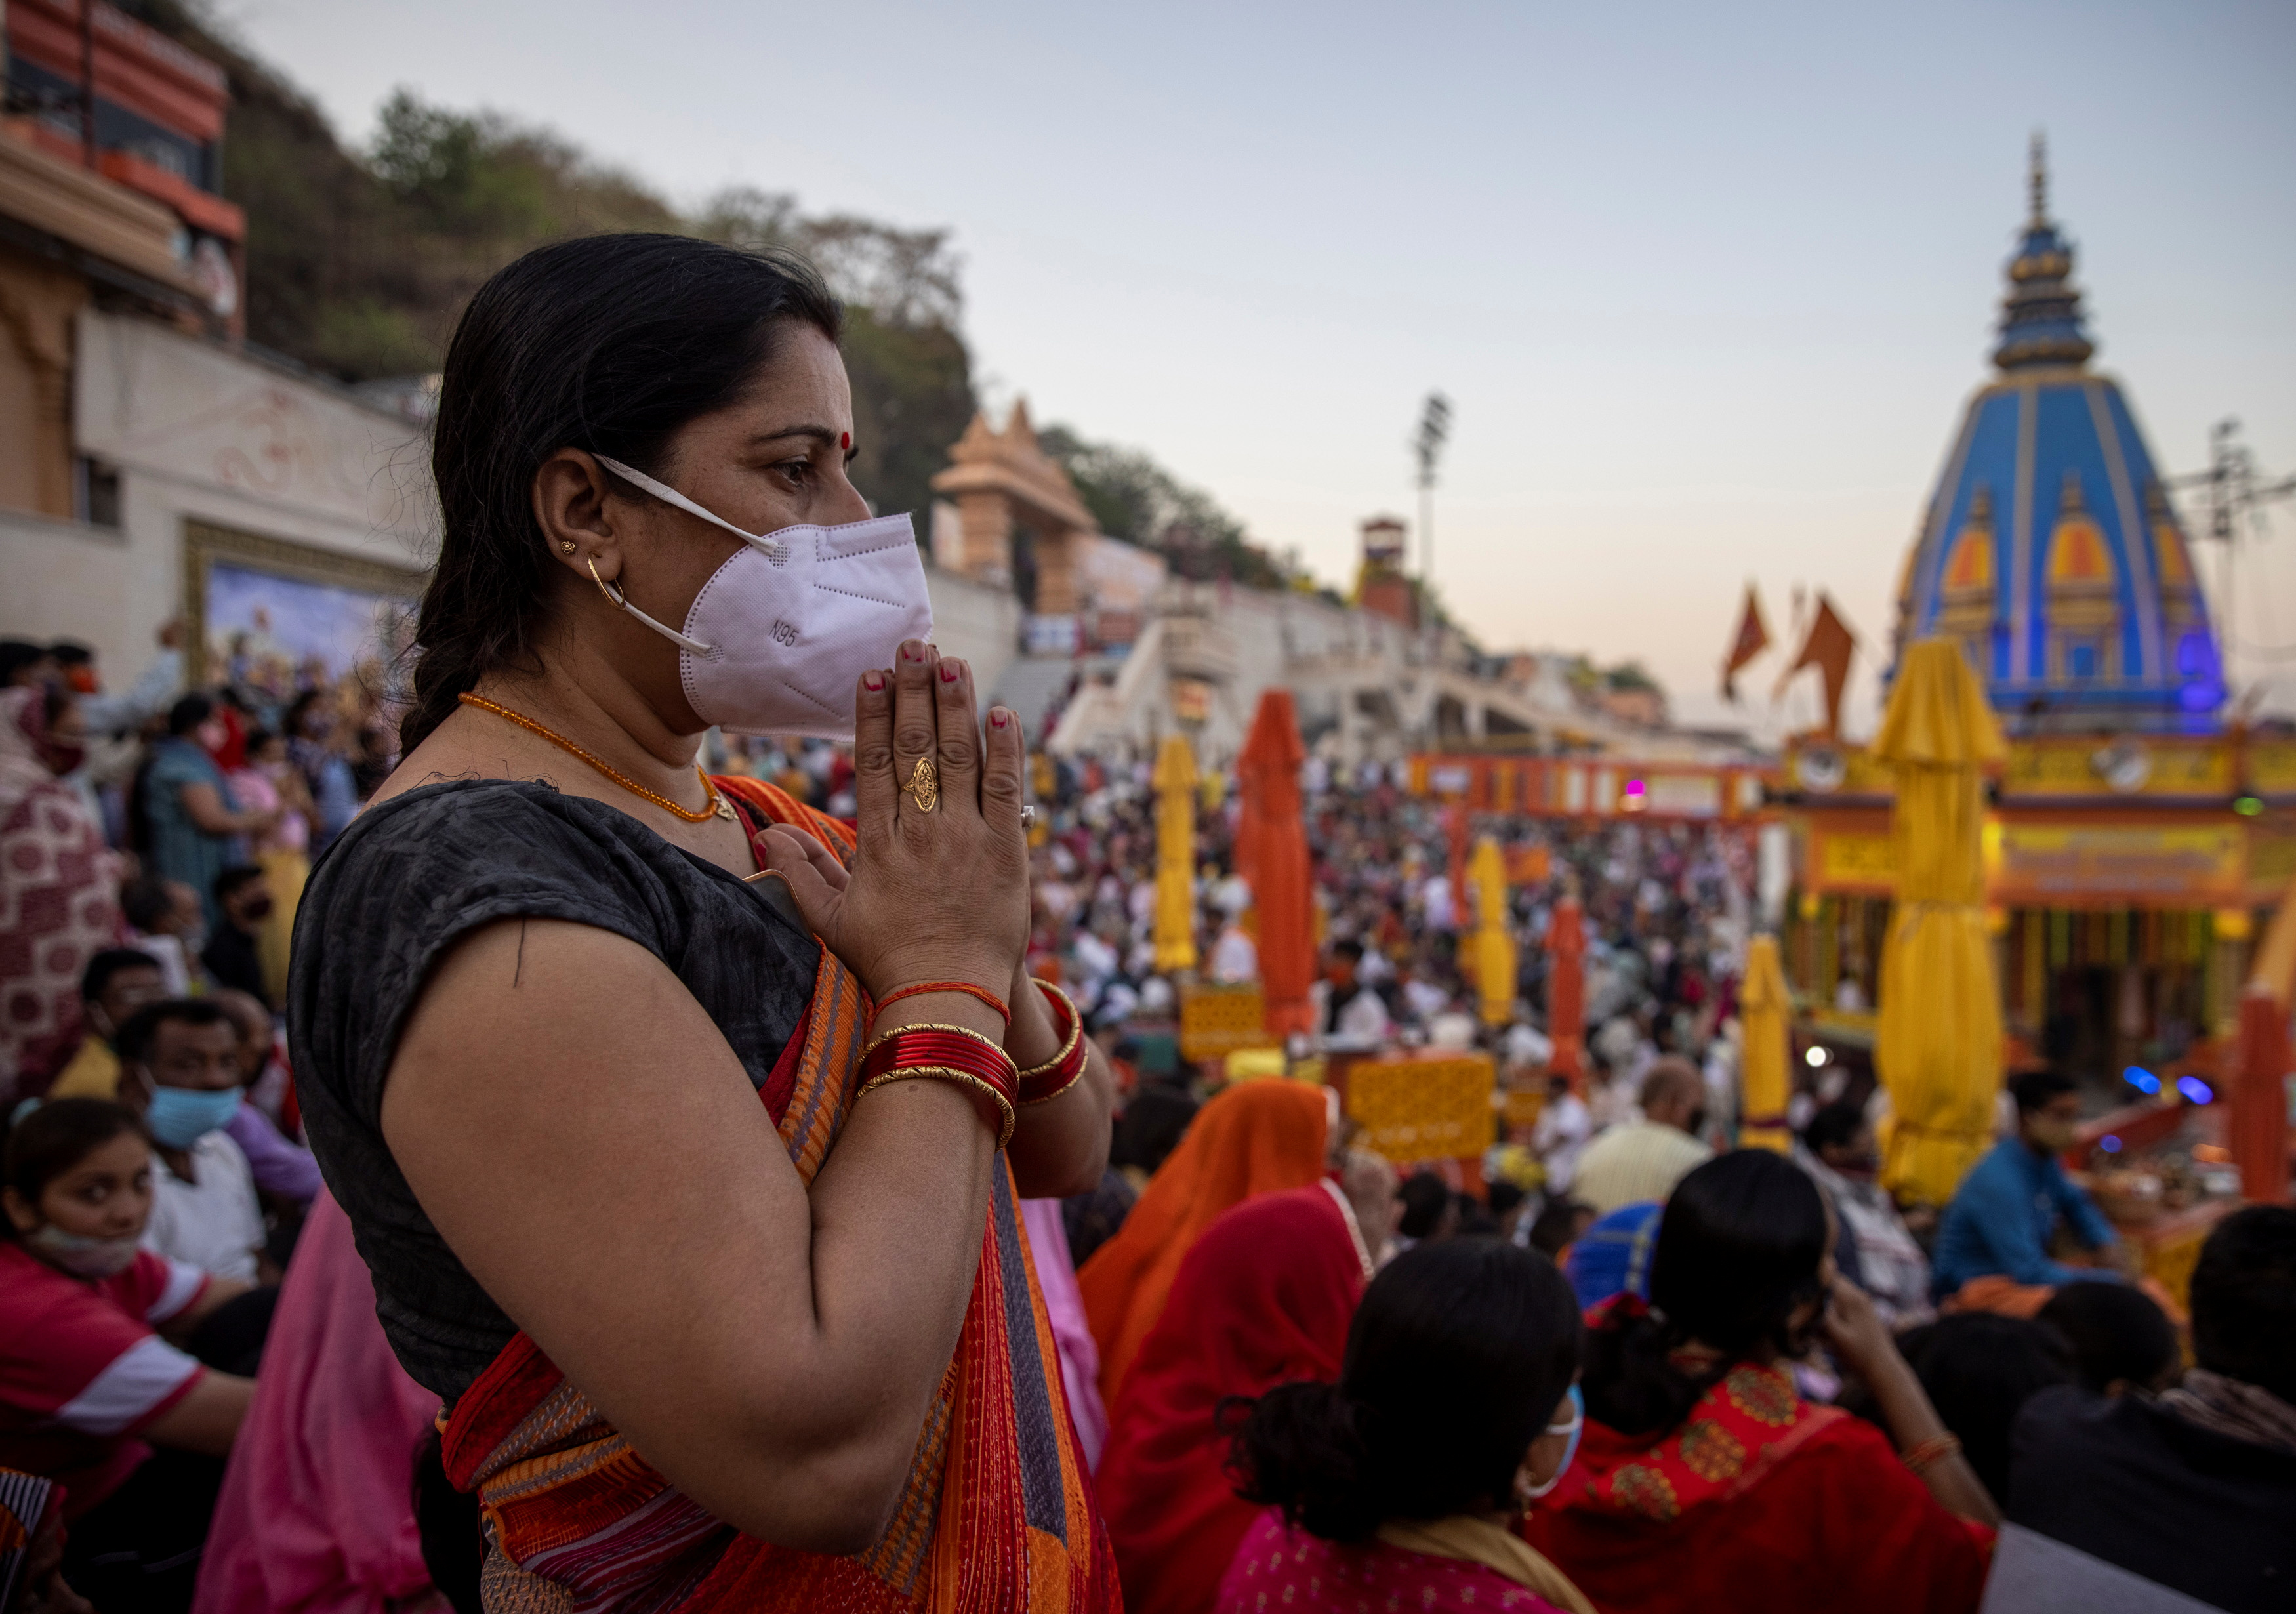 A devotee attends an evening prayer on the banks of Ganges river during Kumbh Mela, or the Pitcher Festival, amidst the spread of the coronavirus disease (COVID-19), in Haridwar, India, April 10, 2021. REUTERS/Danish Siddiqui